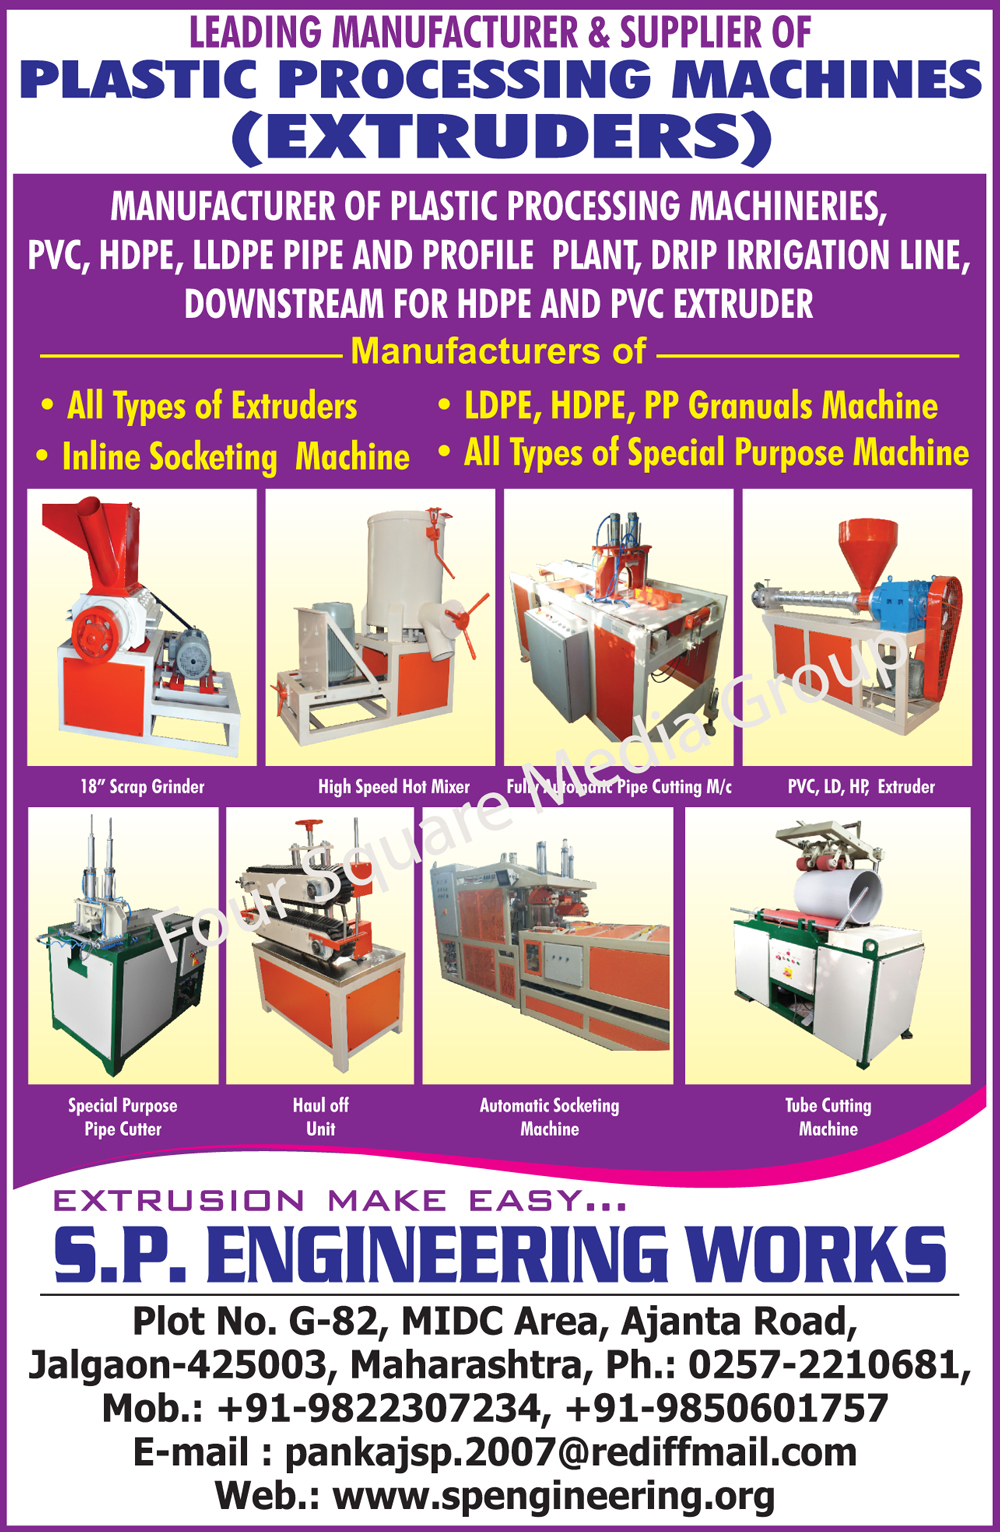 Plastic Processing Machines, Plastic Extruders, Scrap Grinders, Hot Mixers, Fully Automatic Pipe Cutting Machines, PVC Extruders, LD Extruders, HP Extruders, Special Purpose Pipe Cutters, Haul Off Units, Automatic Socketing Machines, Tube Cutting Machines, SPM, Special Purpose Machines, LDPE Granule Machines, HDPE Granule Machines, PP Granule Machines, Drip Irrigation Lines, PVC Pipe Plant, HDPE Pipe Plant, LLDPE Pipe Plant, PVC Profile Plant, HDPE Profile Plant, LLDPE Profile Plant